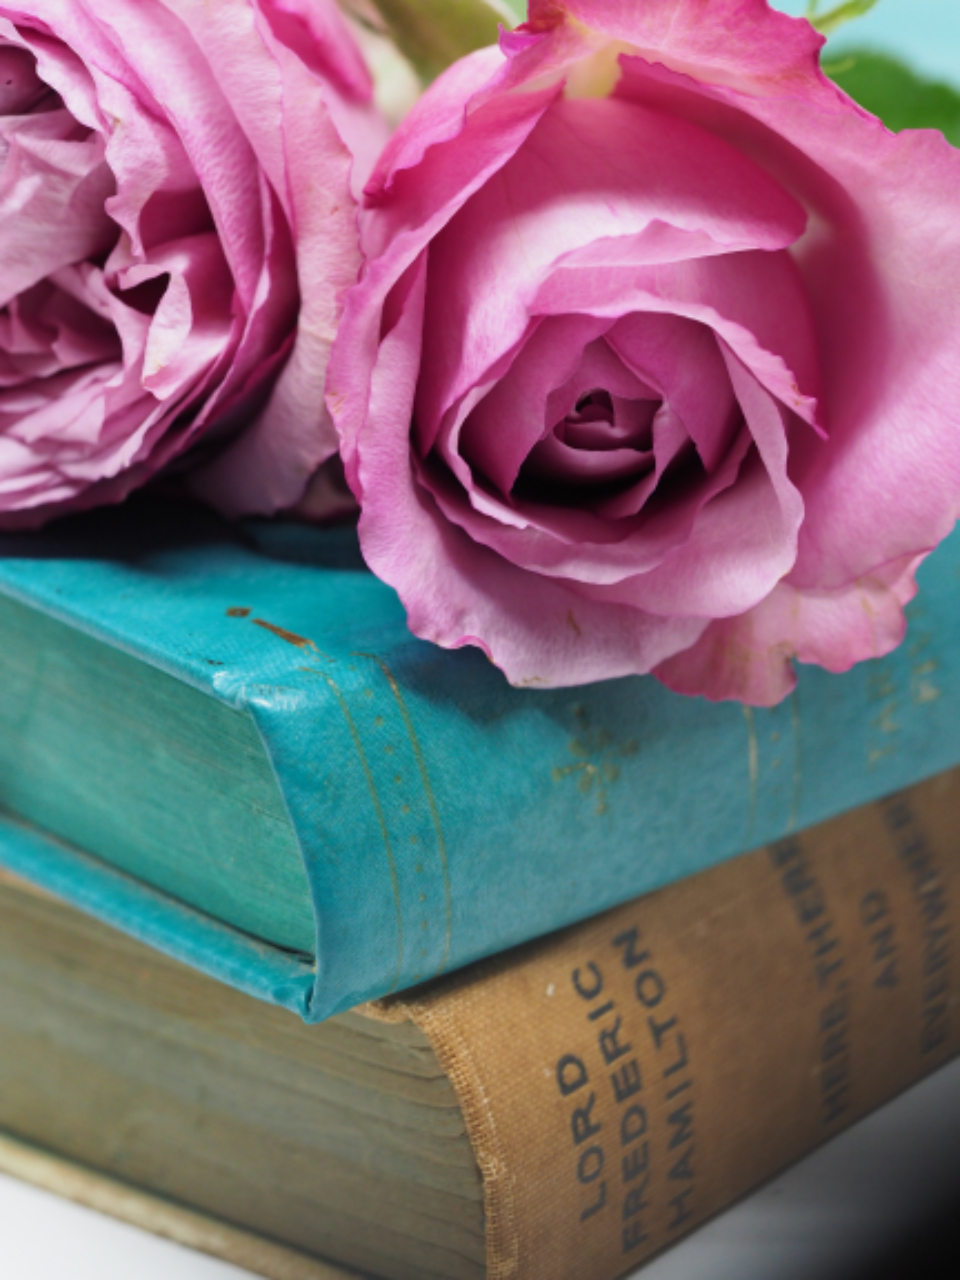 antique books roses pink roses vintage flowers reading read literature